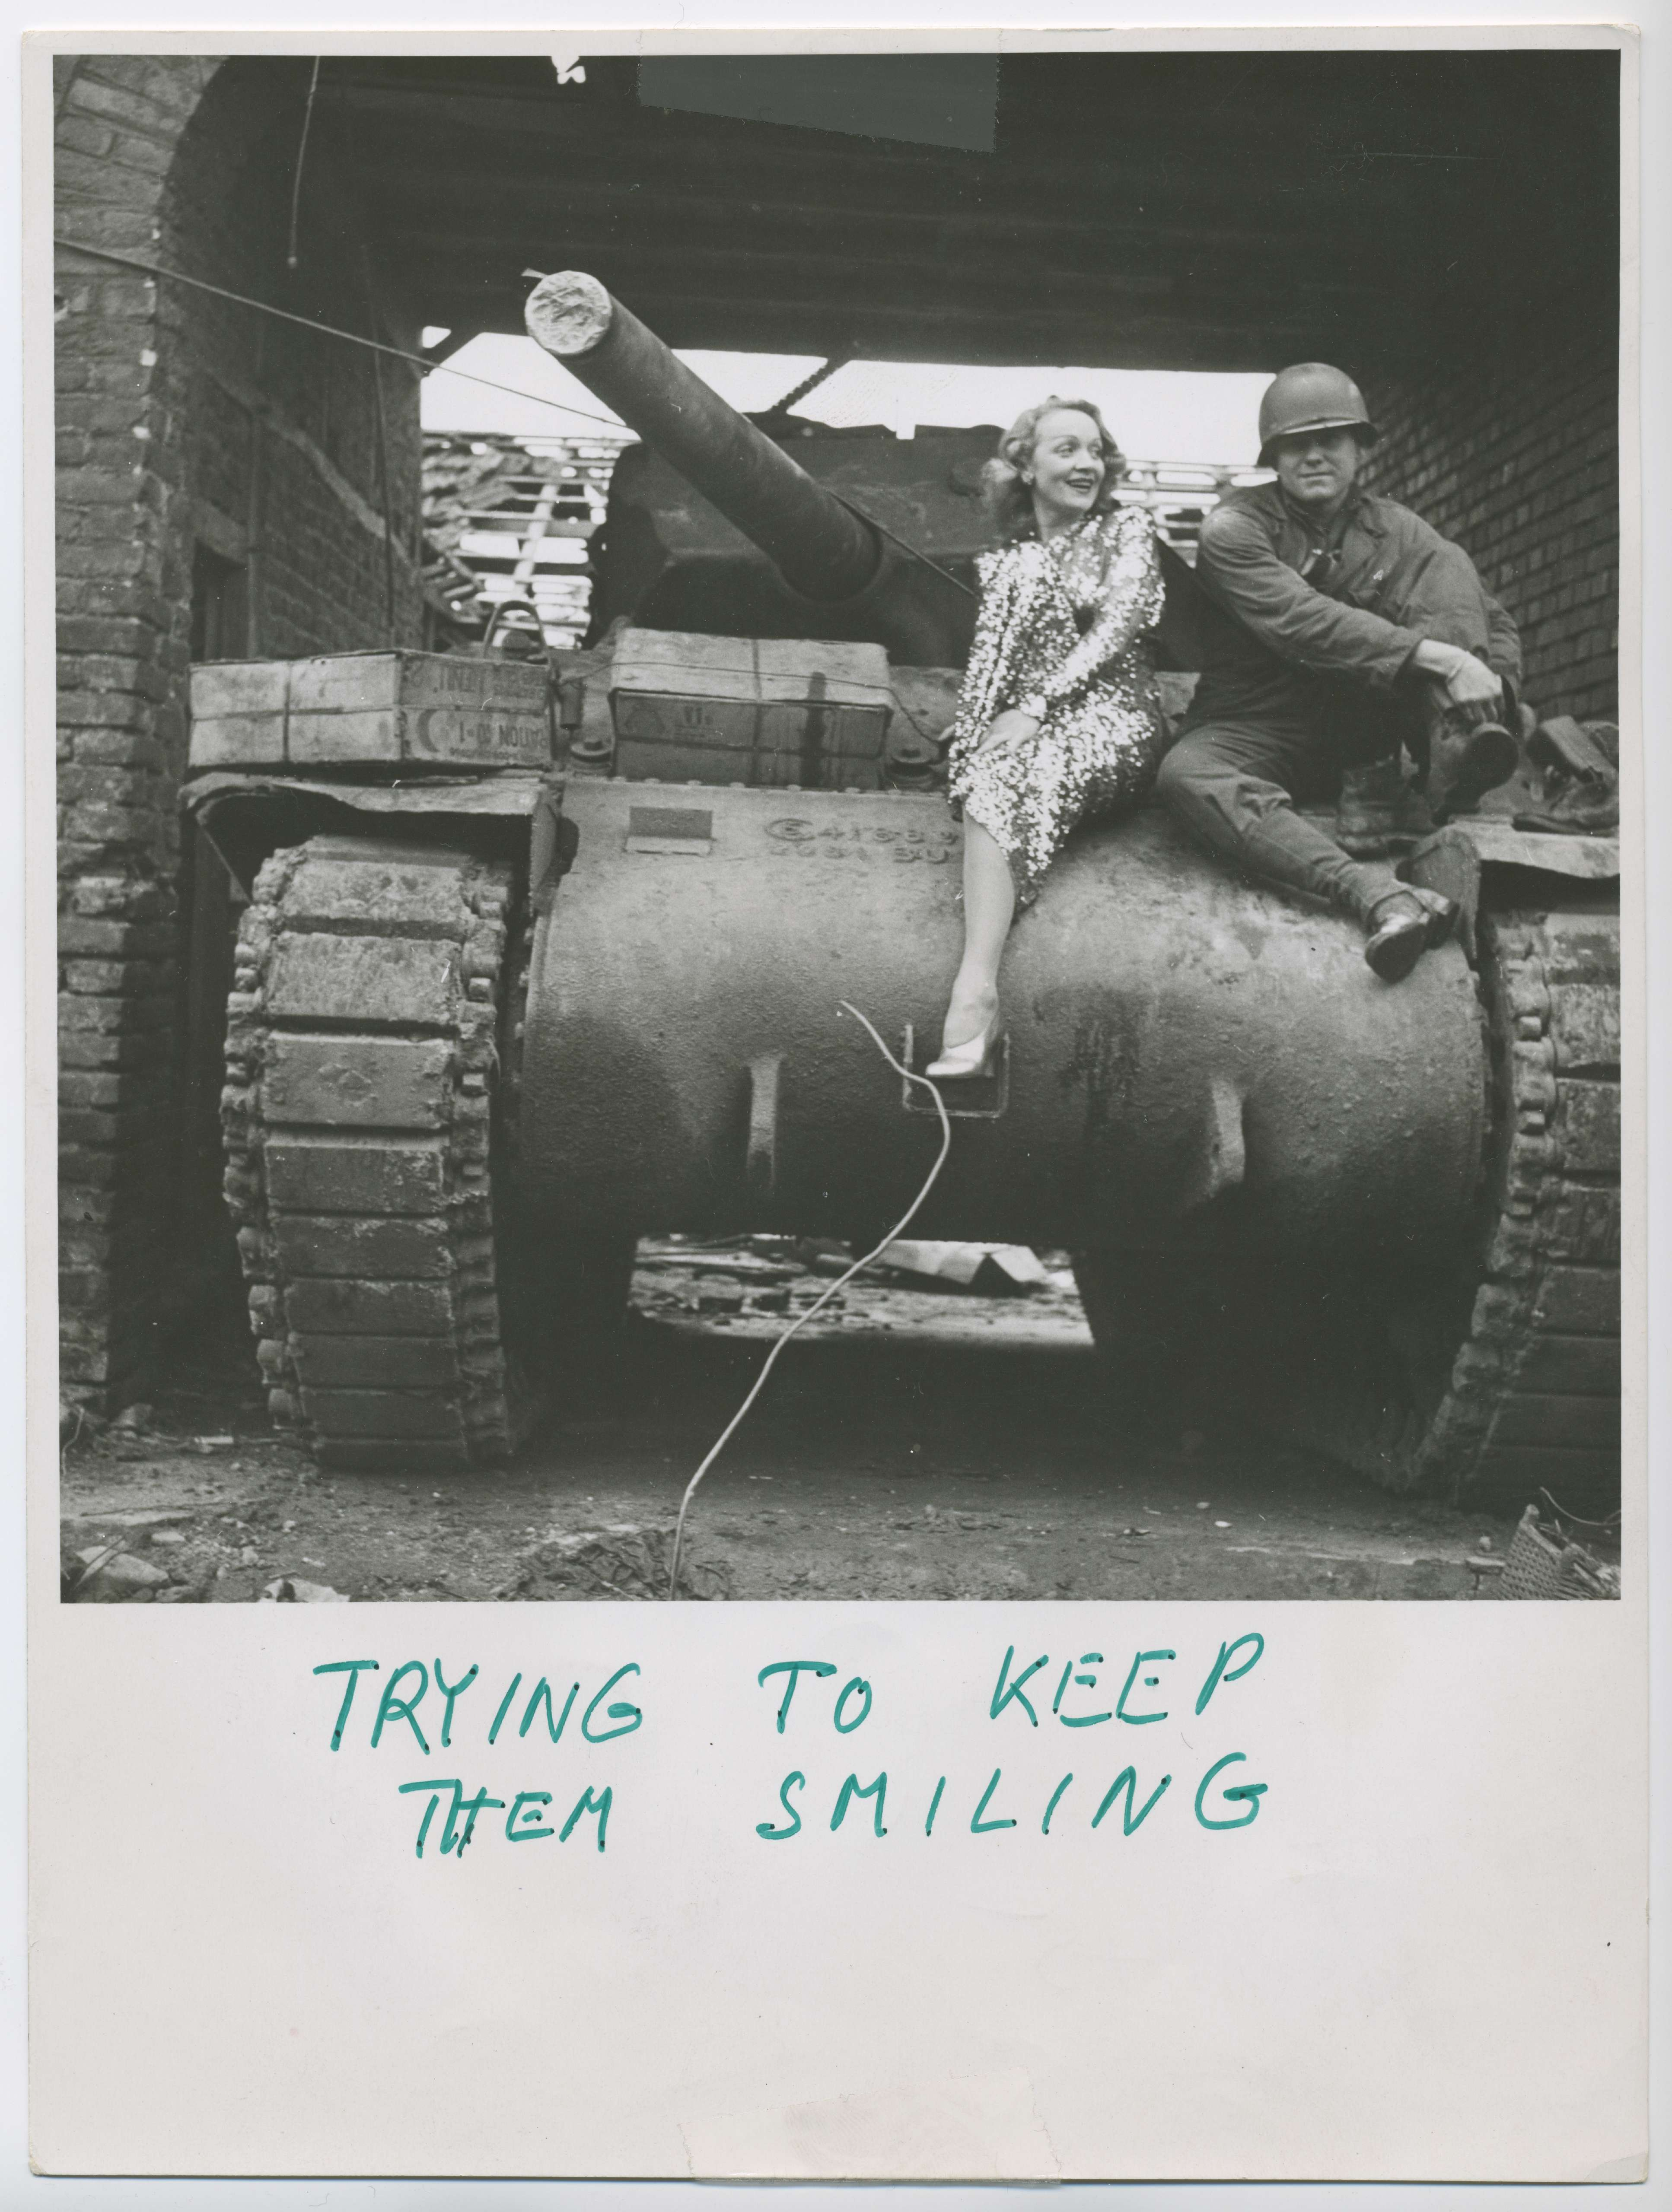 Marlene Dietrich in a performance costume, on a US army tank in Gillrath bei Geilenkirchen in February 1945